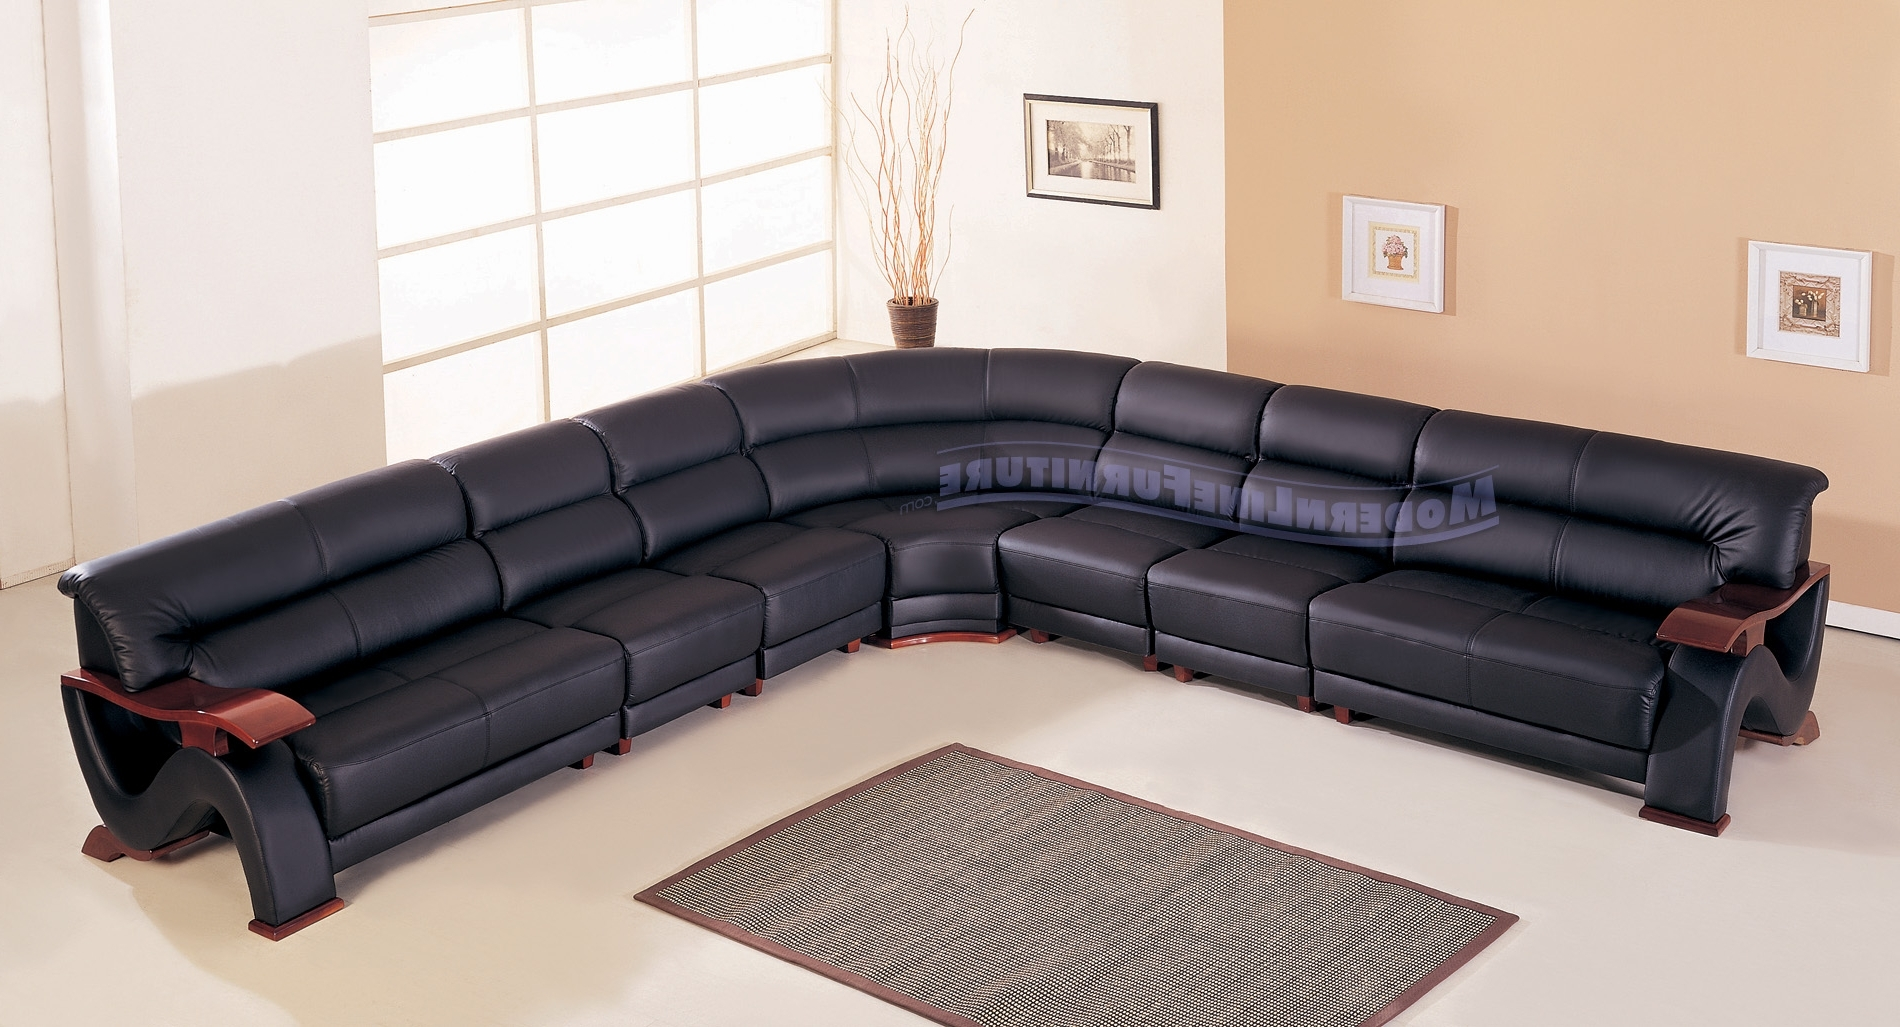 2018 Deep Seating Sectional Sofas Inside Sofa : 120 Inch Sectional Sofa With Chaise U Shaped Sectional Deep (View 8 of 15)